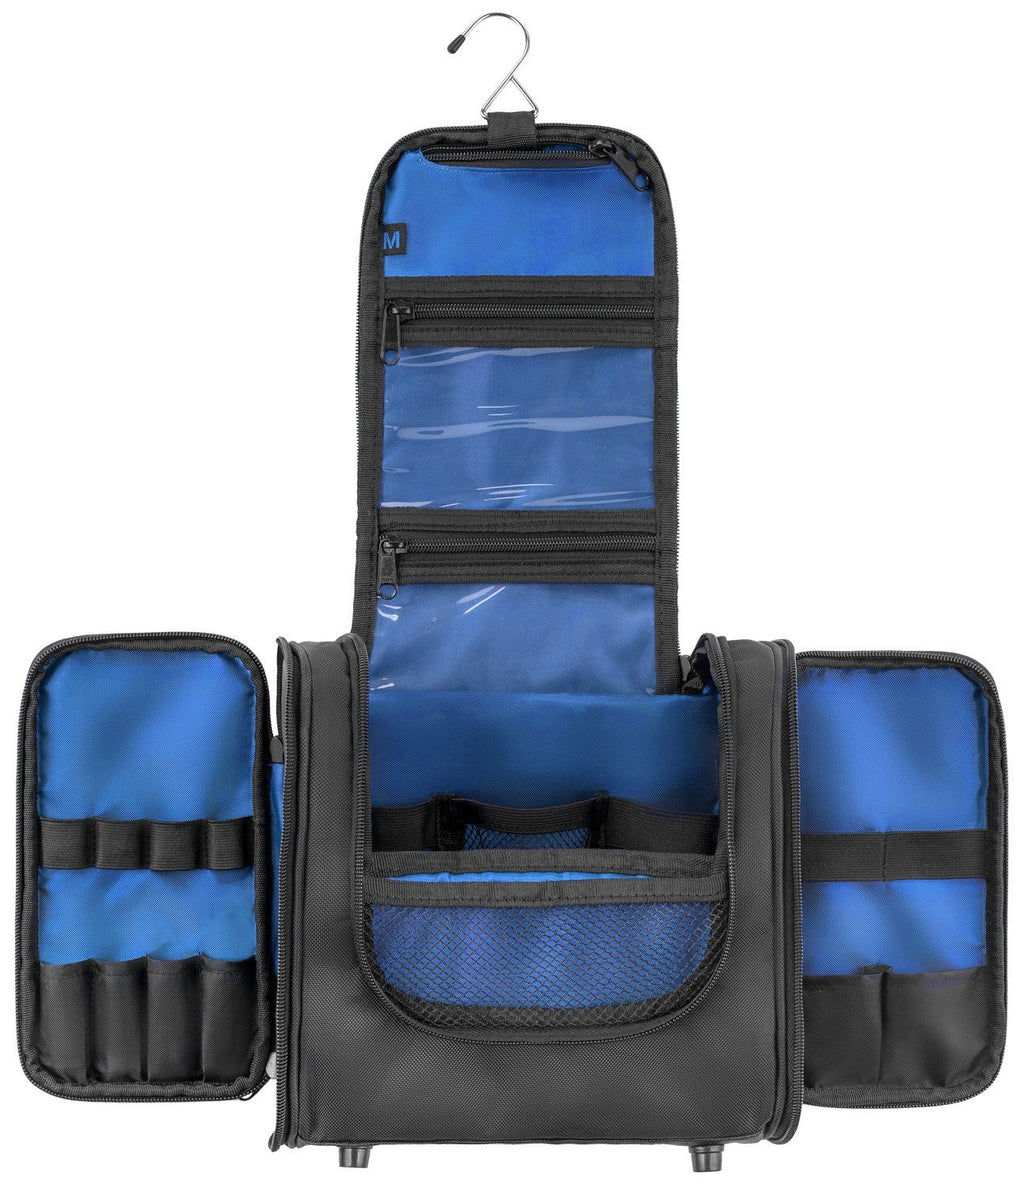 Men's Hanging Travel Toiletries Kit